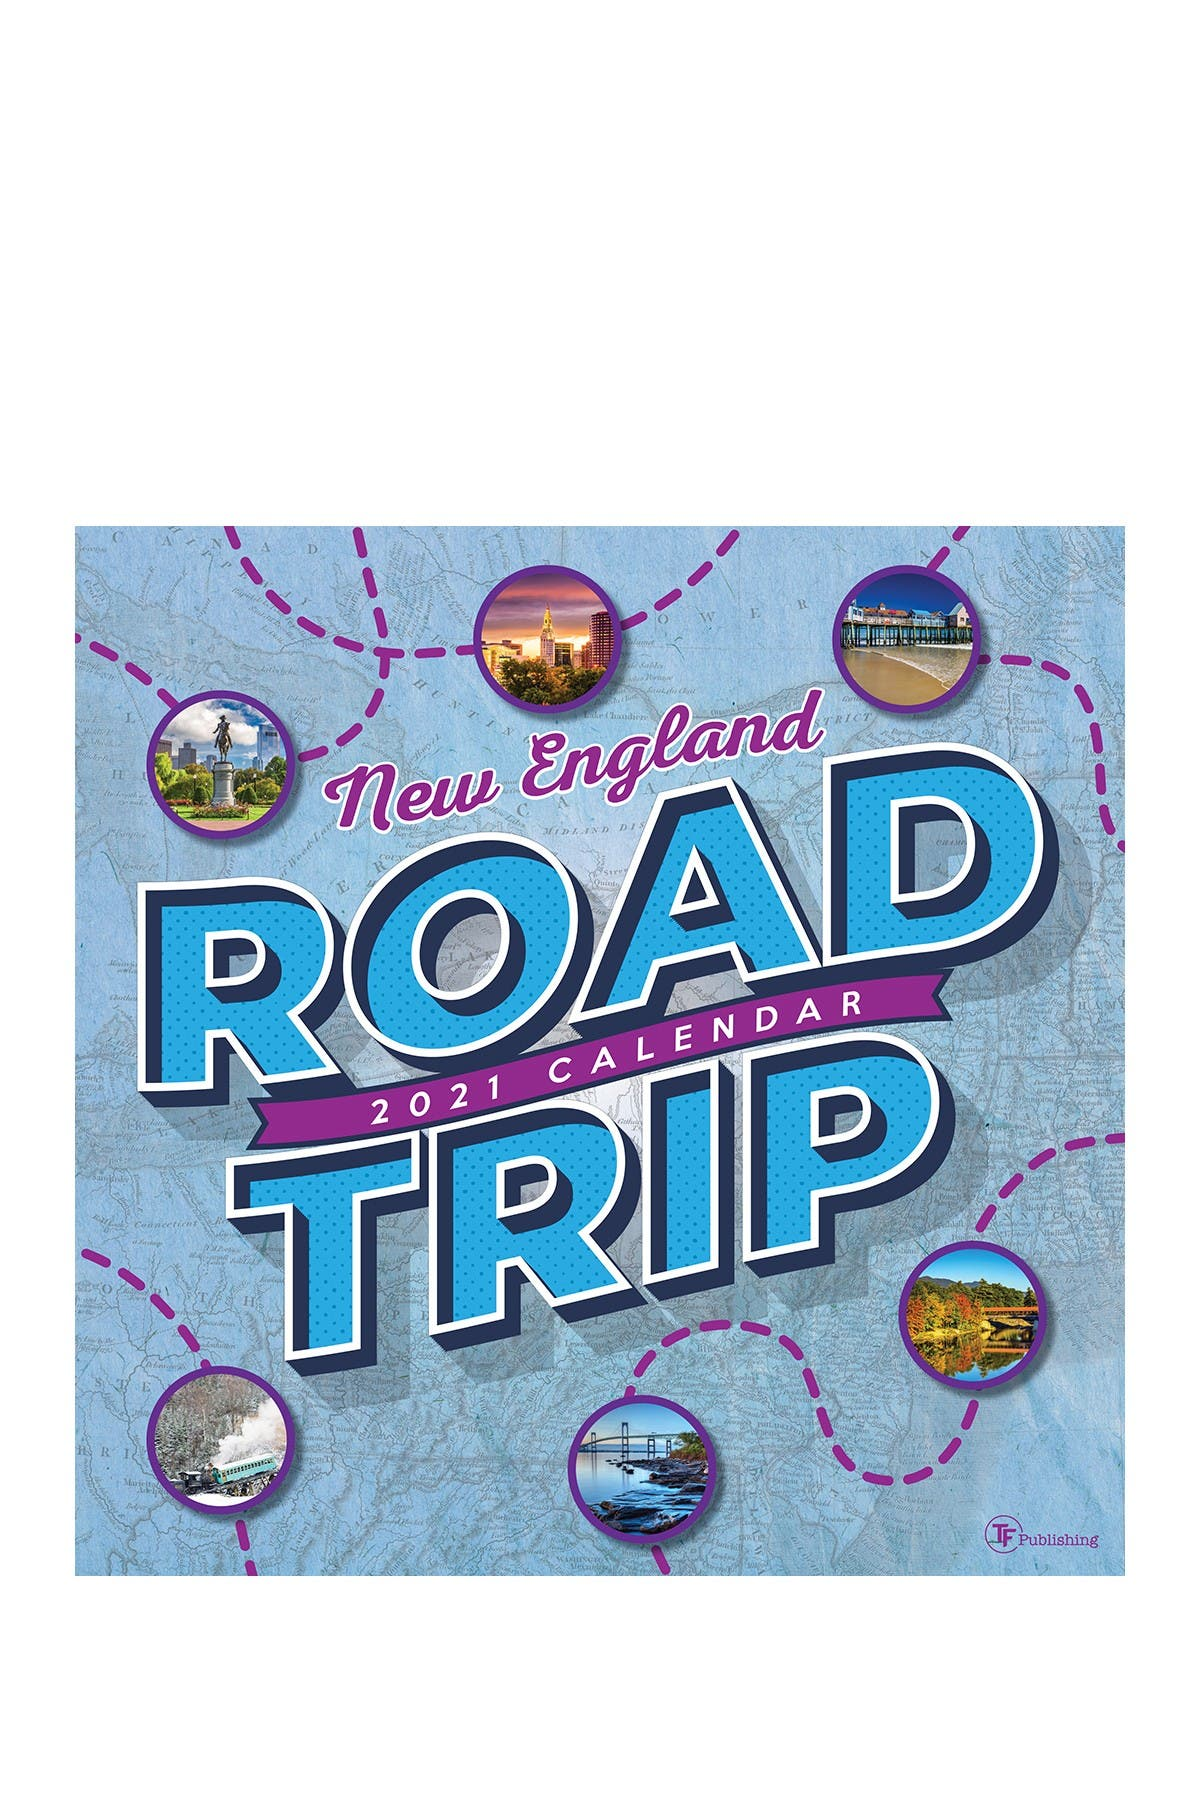 Image of TF Publishing 2021 Road Trip: New England Wall Calendar